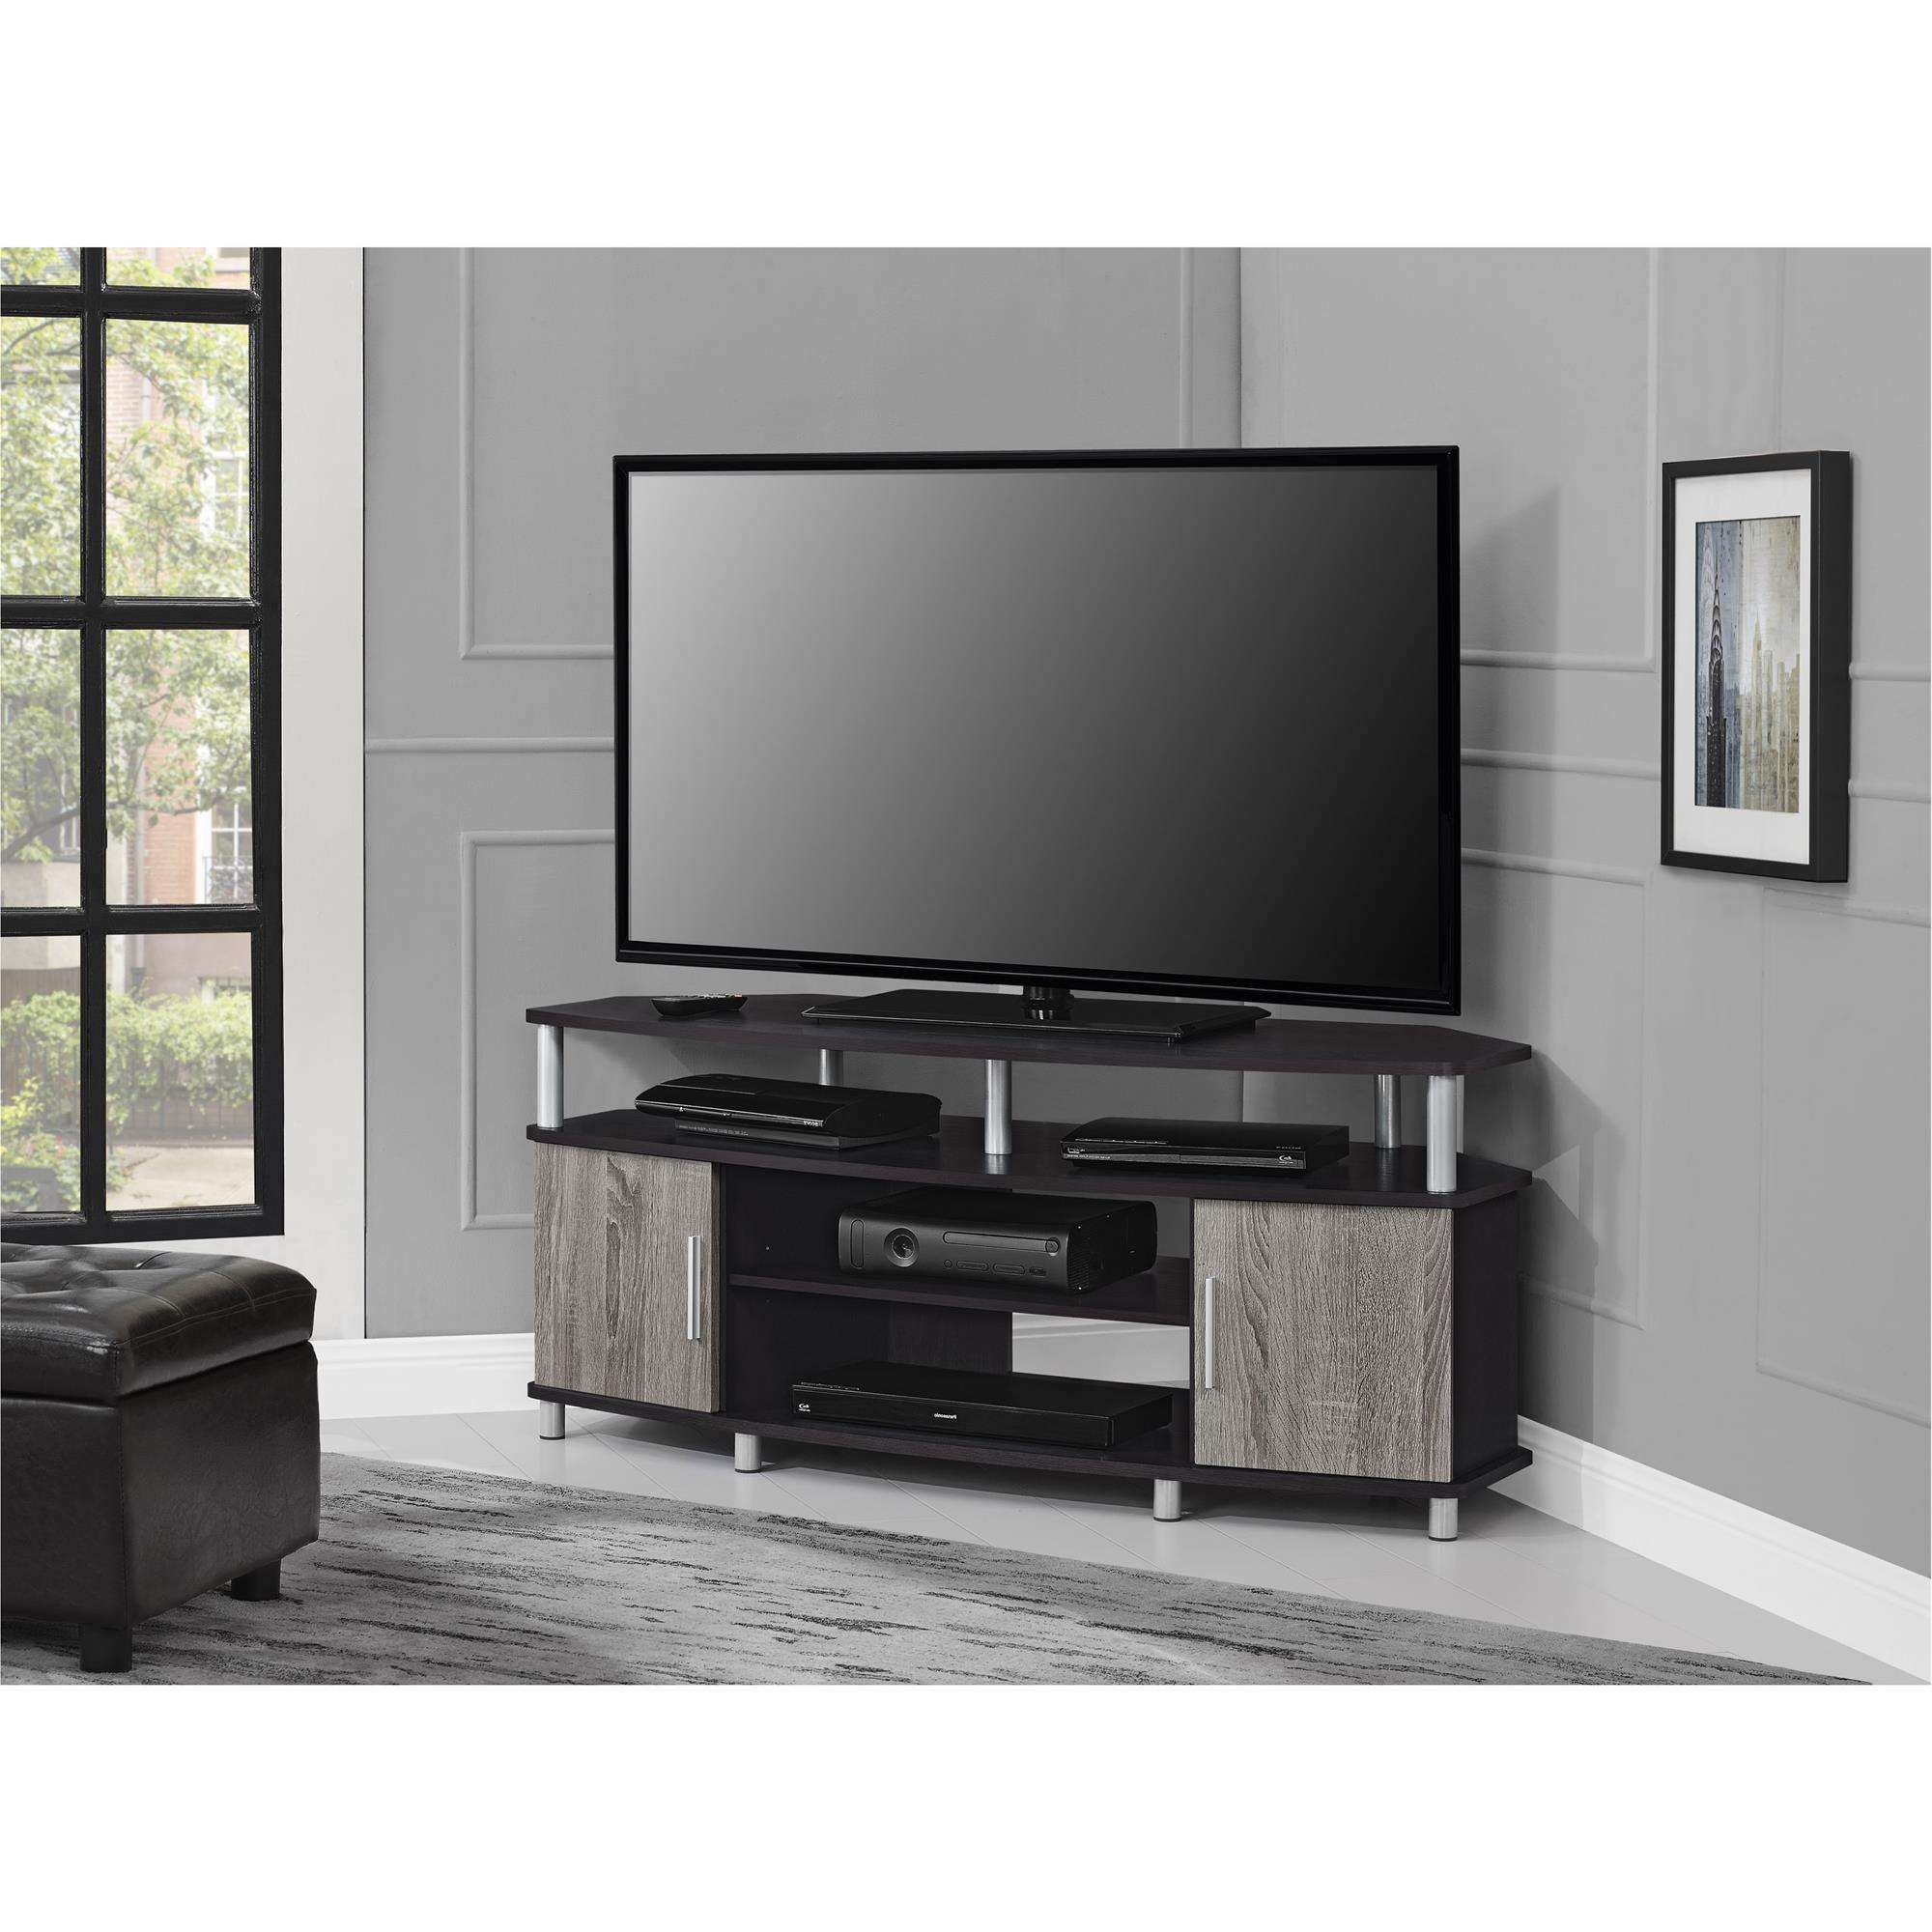 Tempting Your House Its Good Idea Together With Your Life In Tv With Corner Tv Stands For 46 Inch Flat Screen (View 6 of 15)